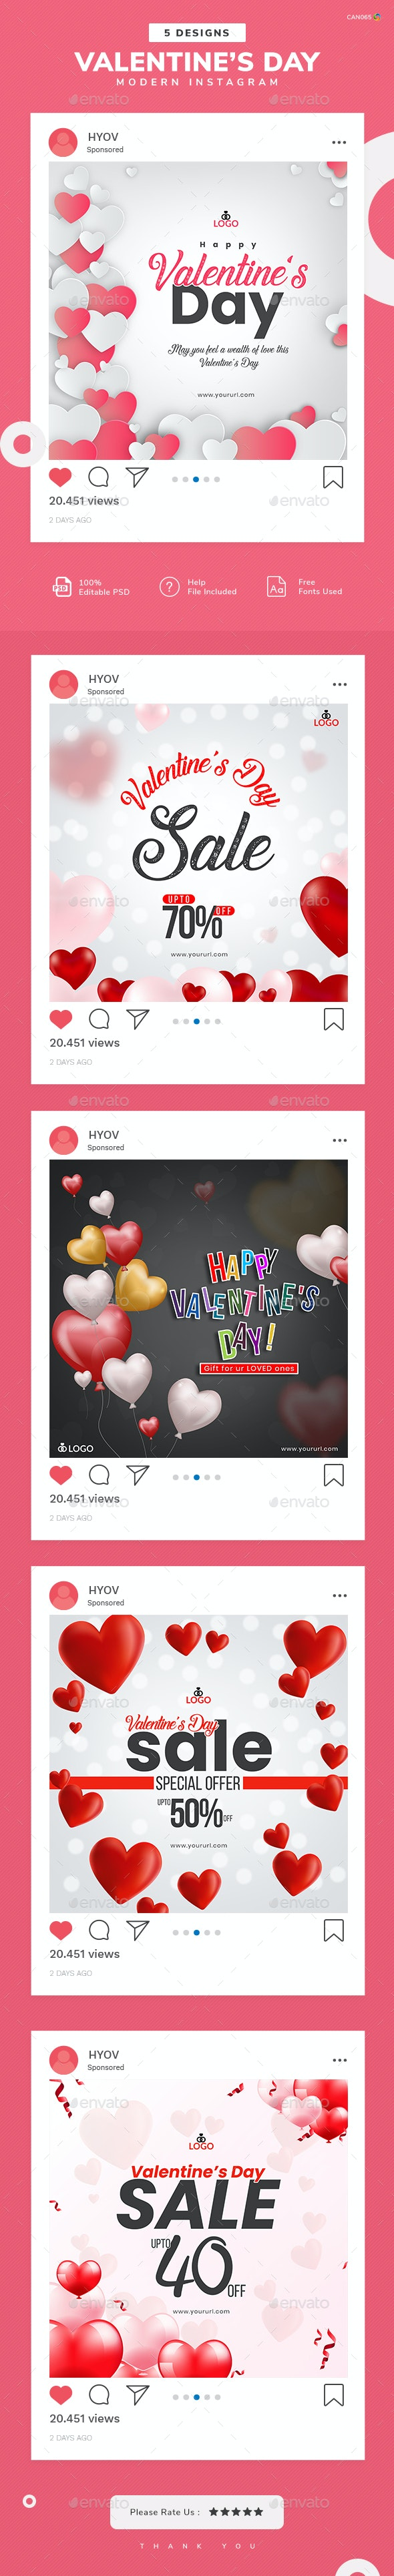 Valentine's Day Instagram Templates - 05 Designs - Miscellaneous Social Media